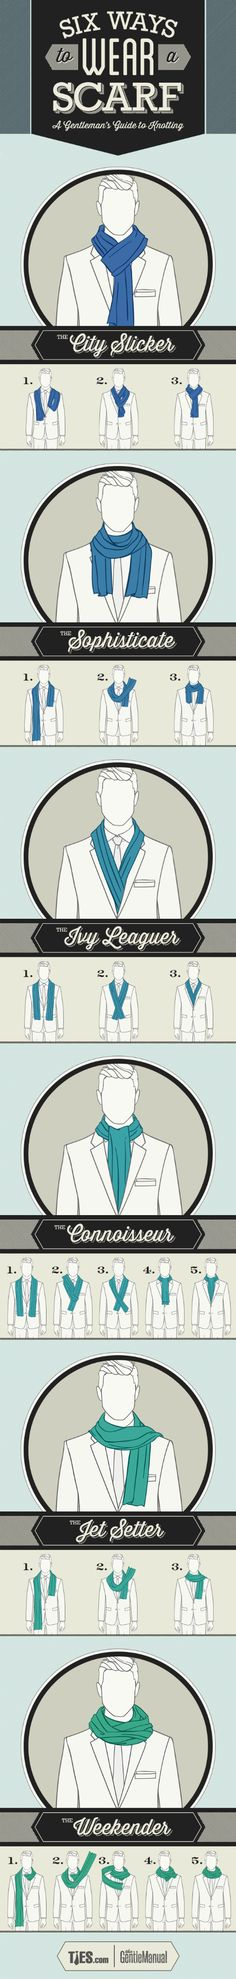 Six Ways To Wear A Scarf: Gentlemen's Guide To Scarf Tying #Infographic #LifeStyle #Clothing